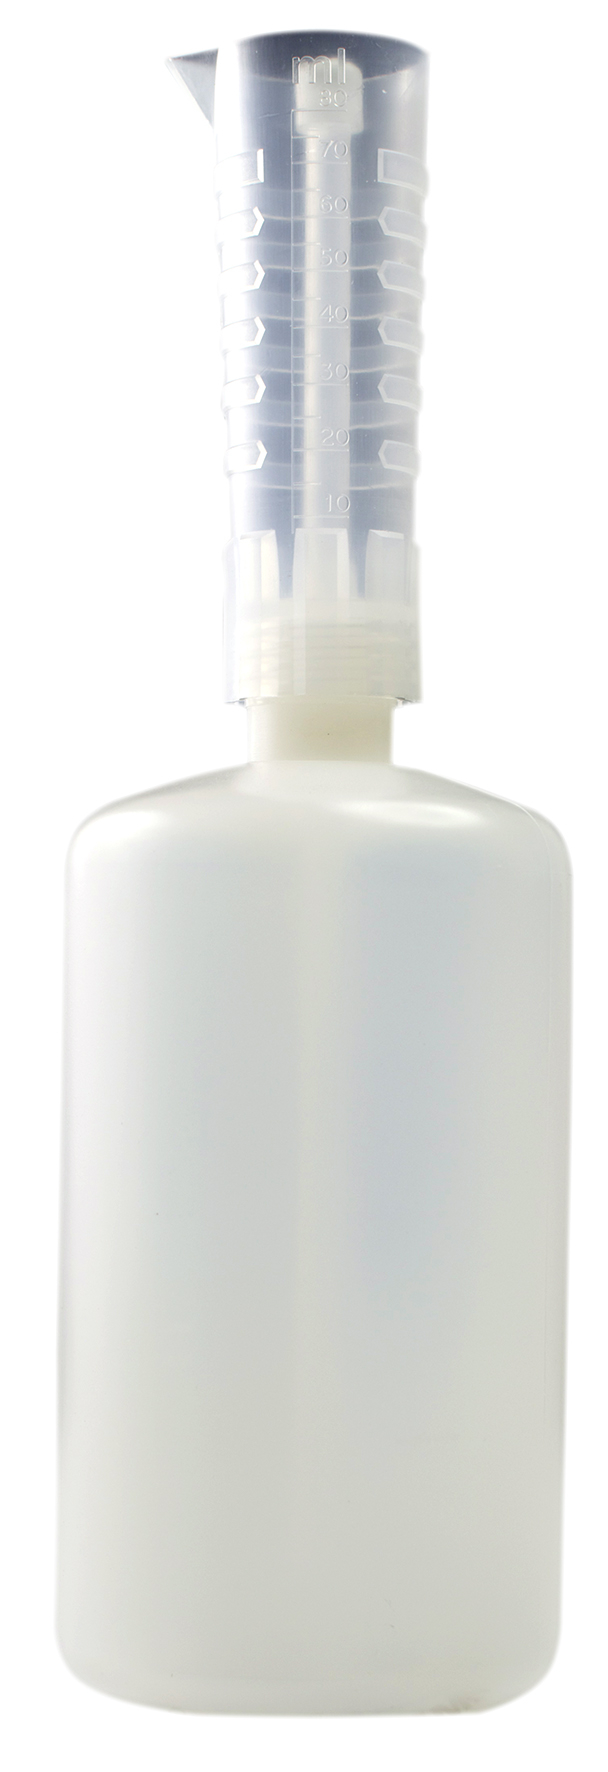 Dispenser Bottle 80ml